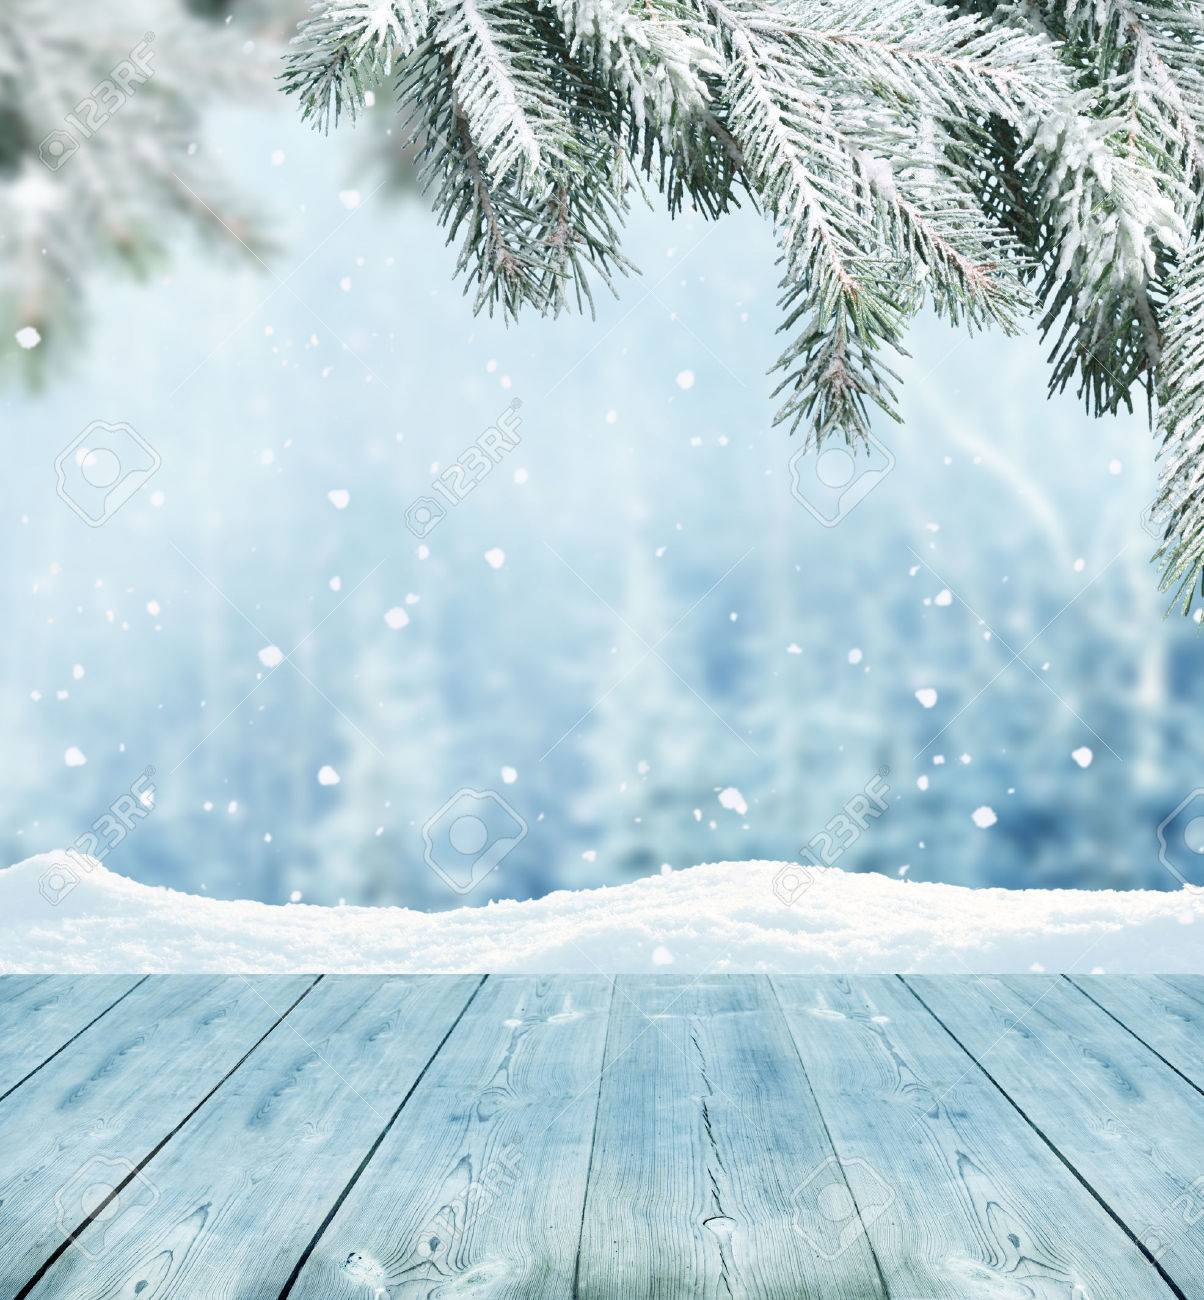 Winter Background Stock Photo Picture And Royalty Free Image Image 25985872